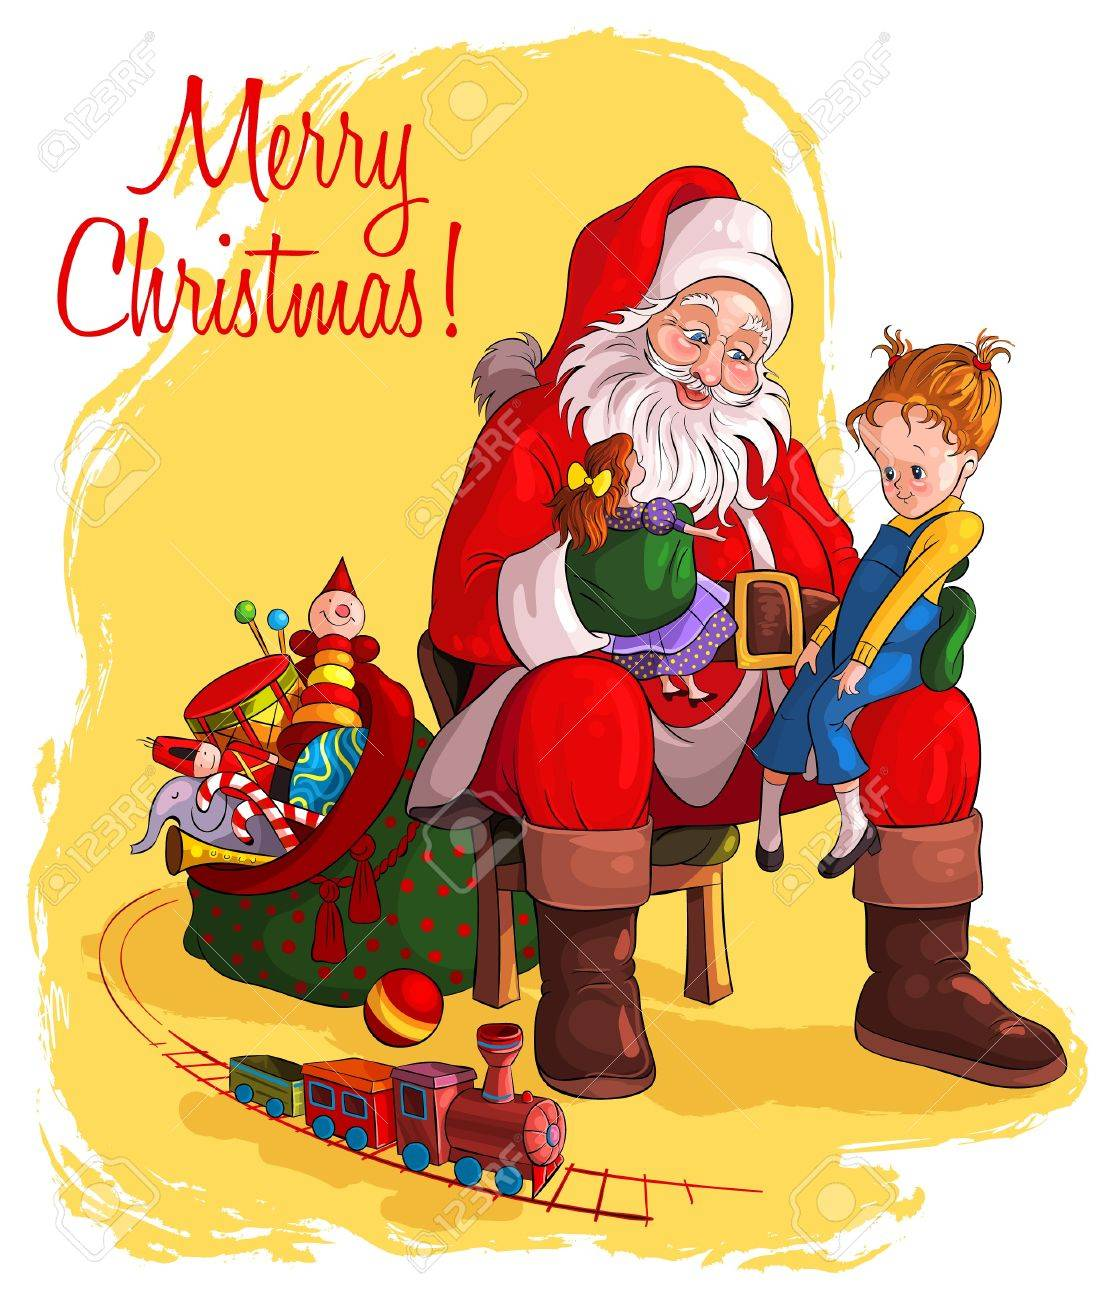 Santa Claus sitting in chair with sack of gift give Christmas gifts to children - 14982184